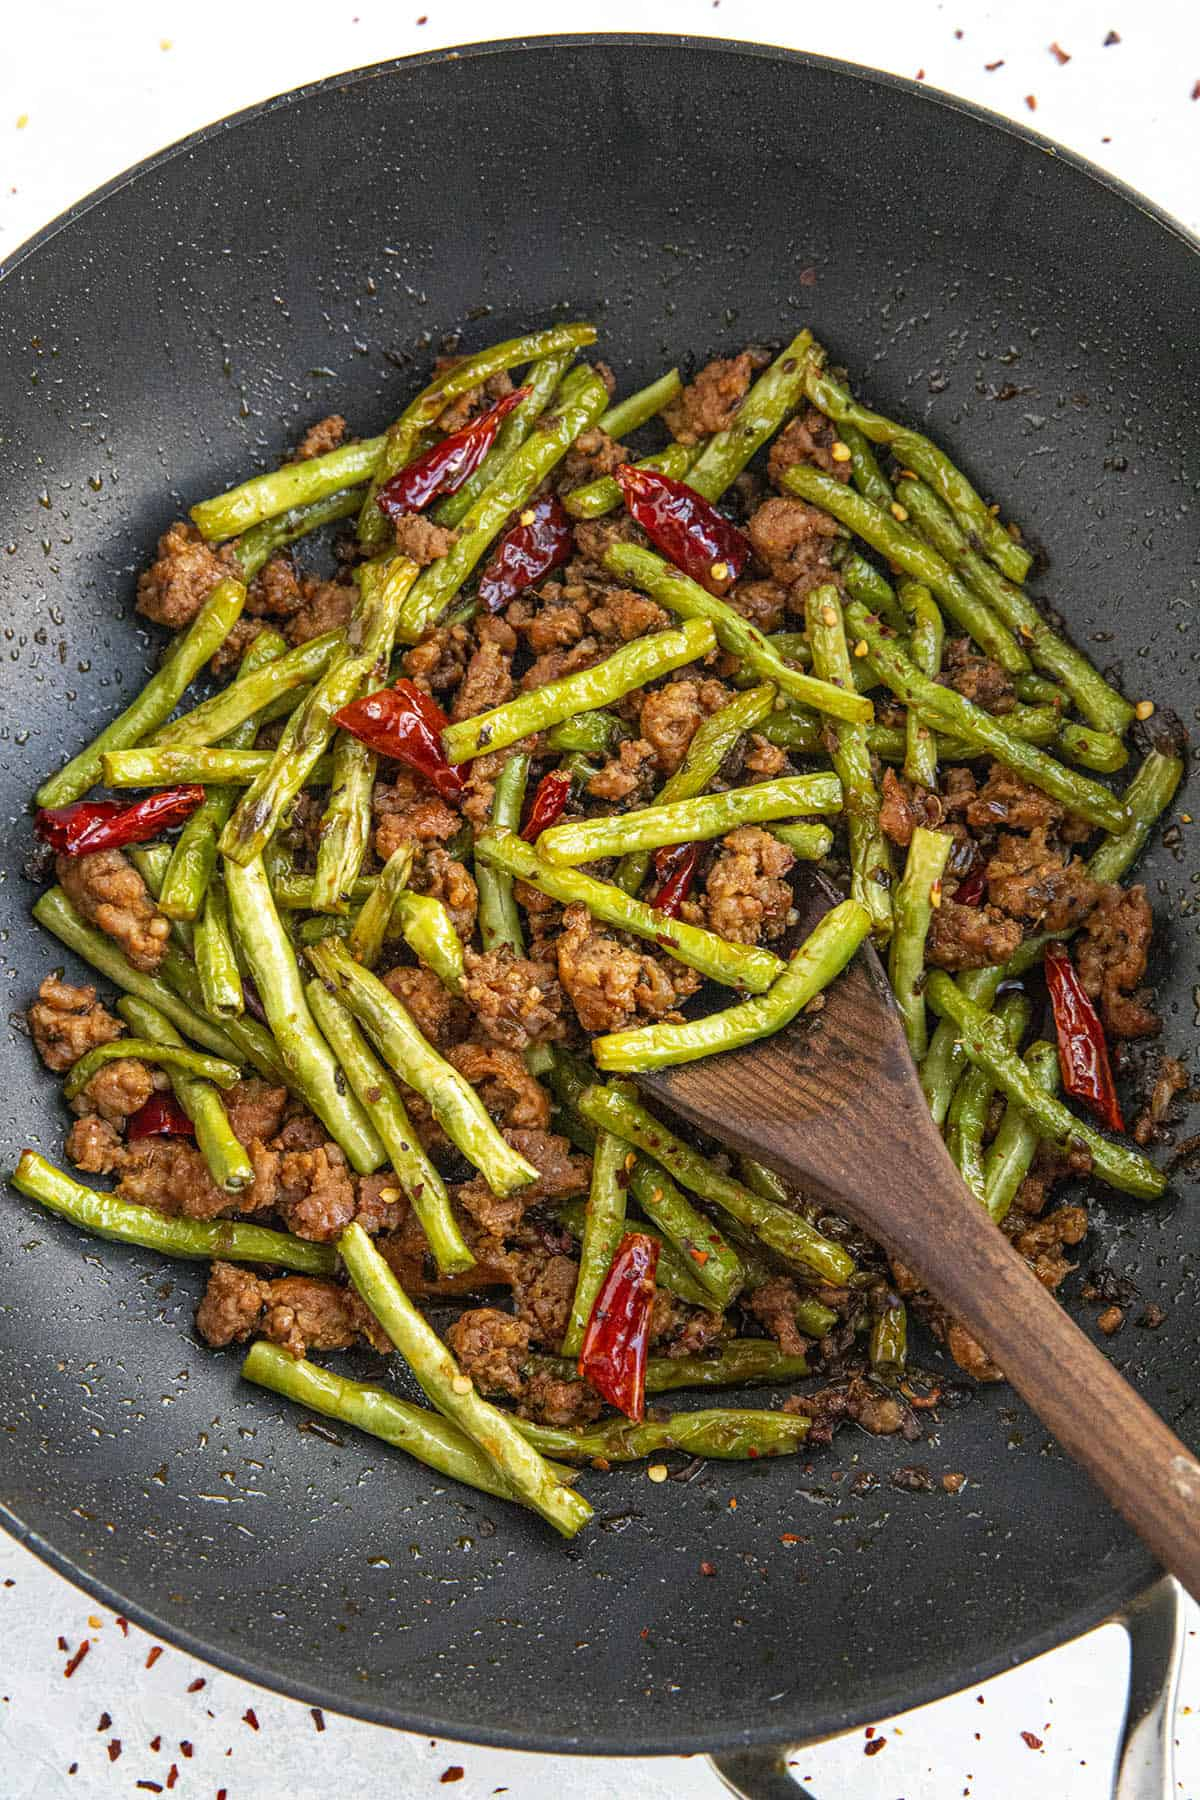 spicy Sichuan Dry Fried Green Beans in a pan, ready for the table